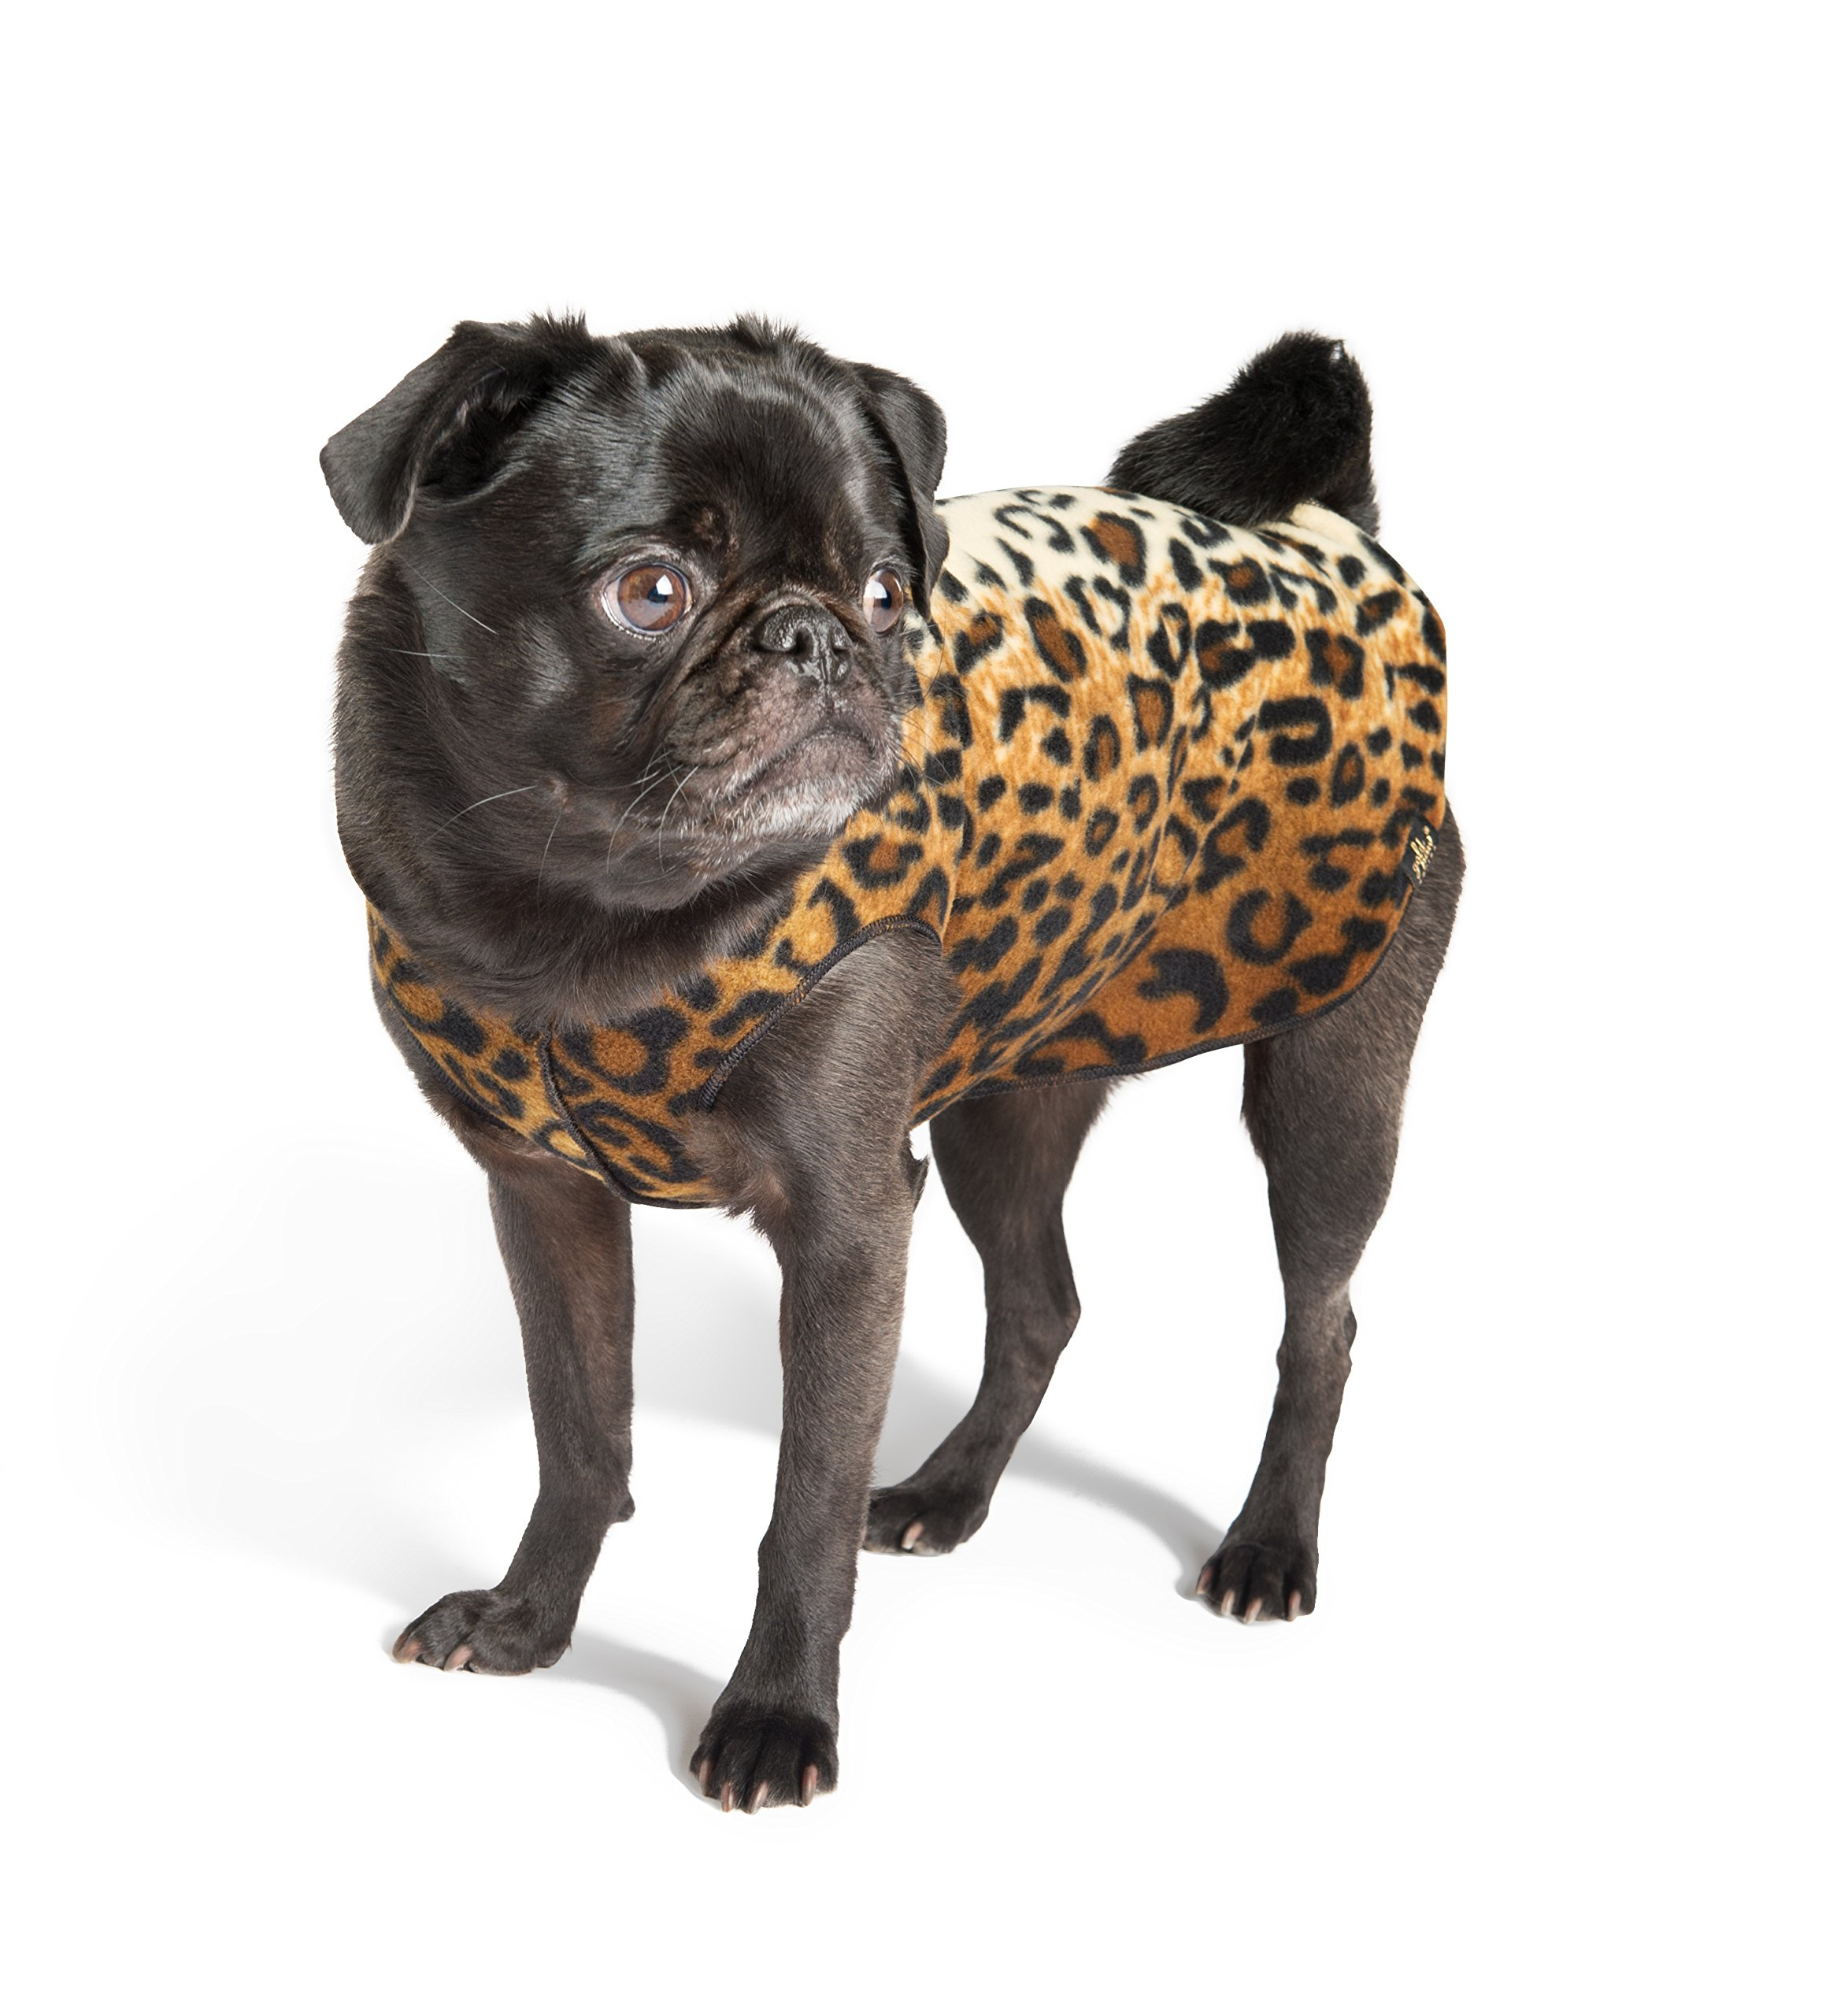 Gold Paw Stretch Blue Fleece Dog Coat – Soft, Warm Dog Clothes, Stretchy Pet Sweater – Machine Washable, Eco Friendly – All Season – Sizes 4-33, Leopard, Size 12